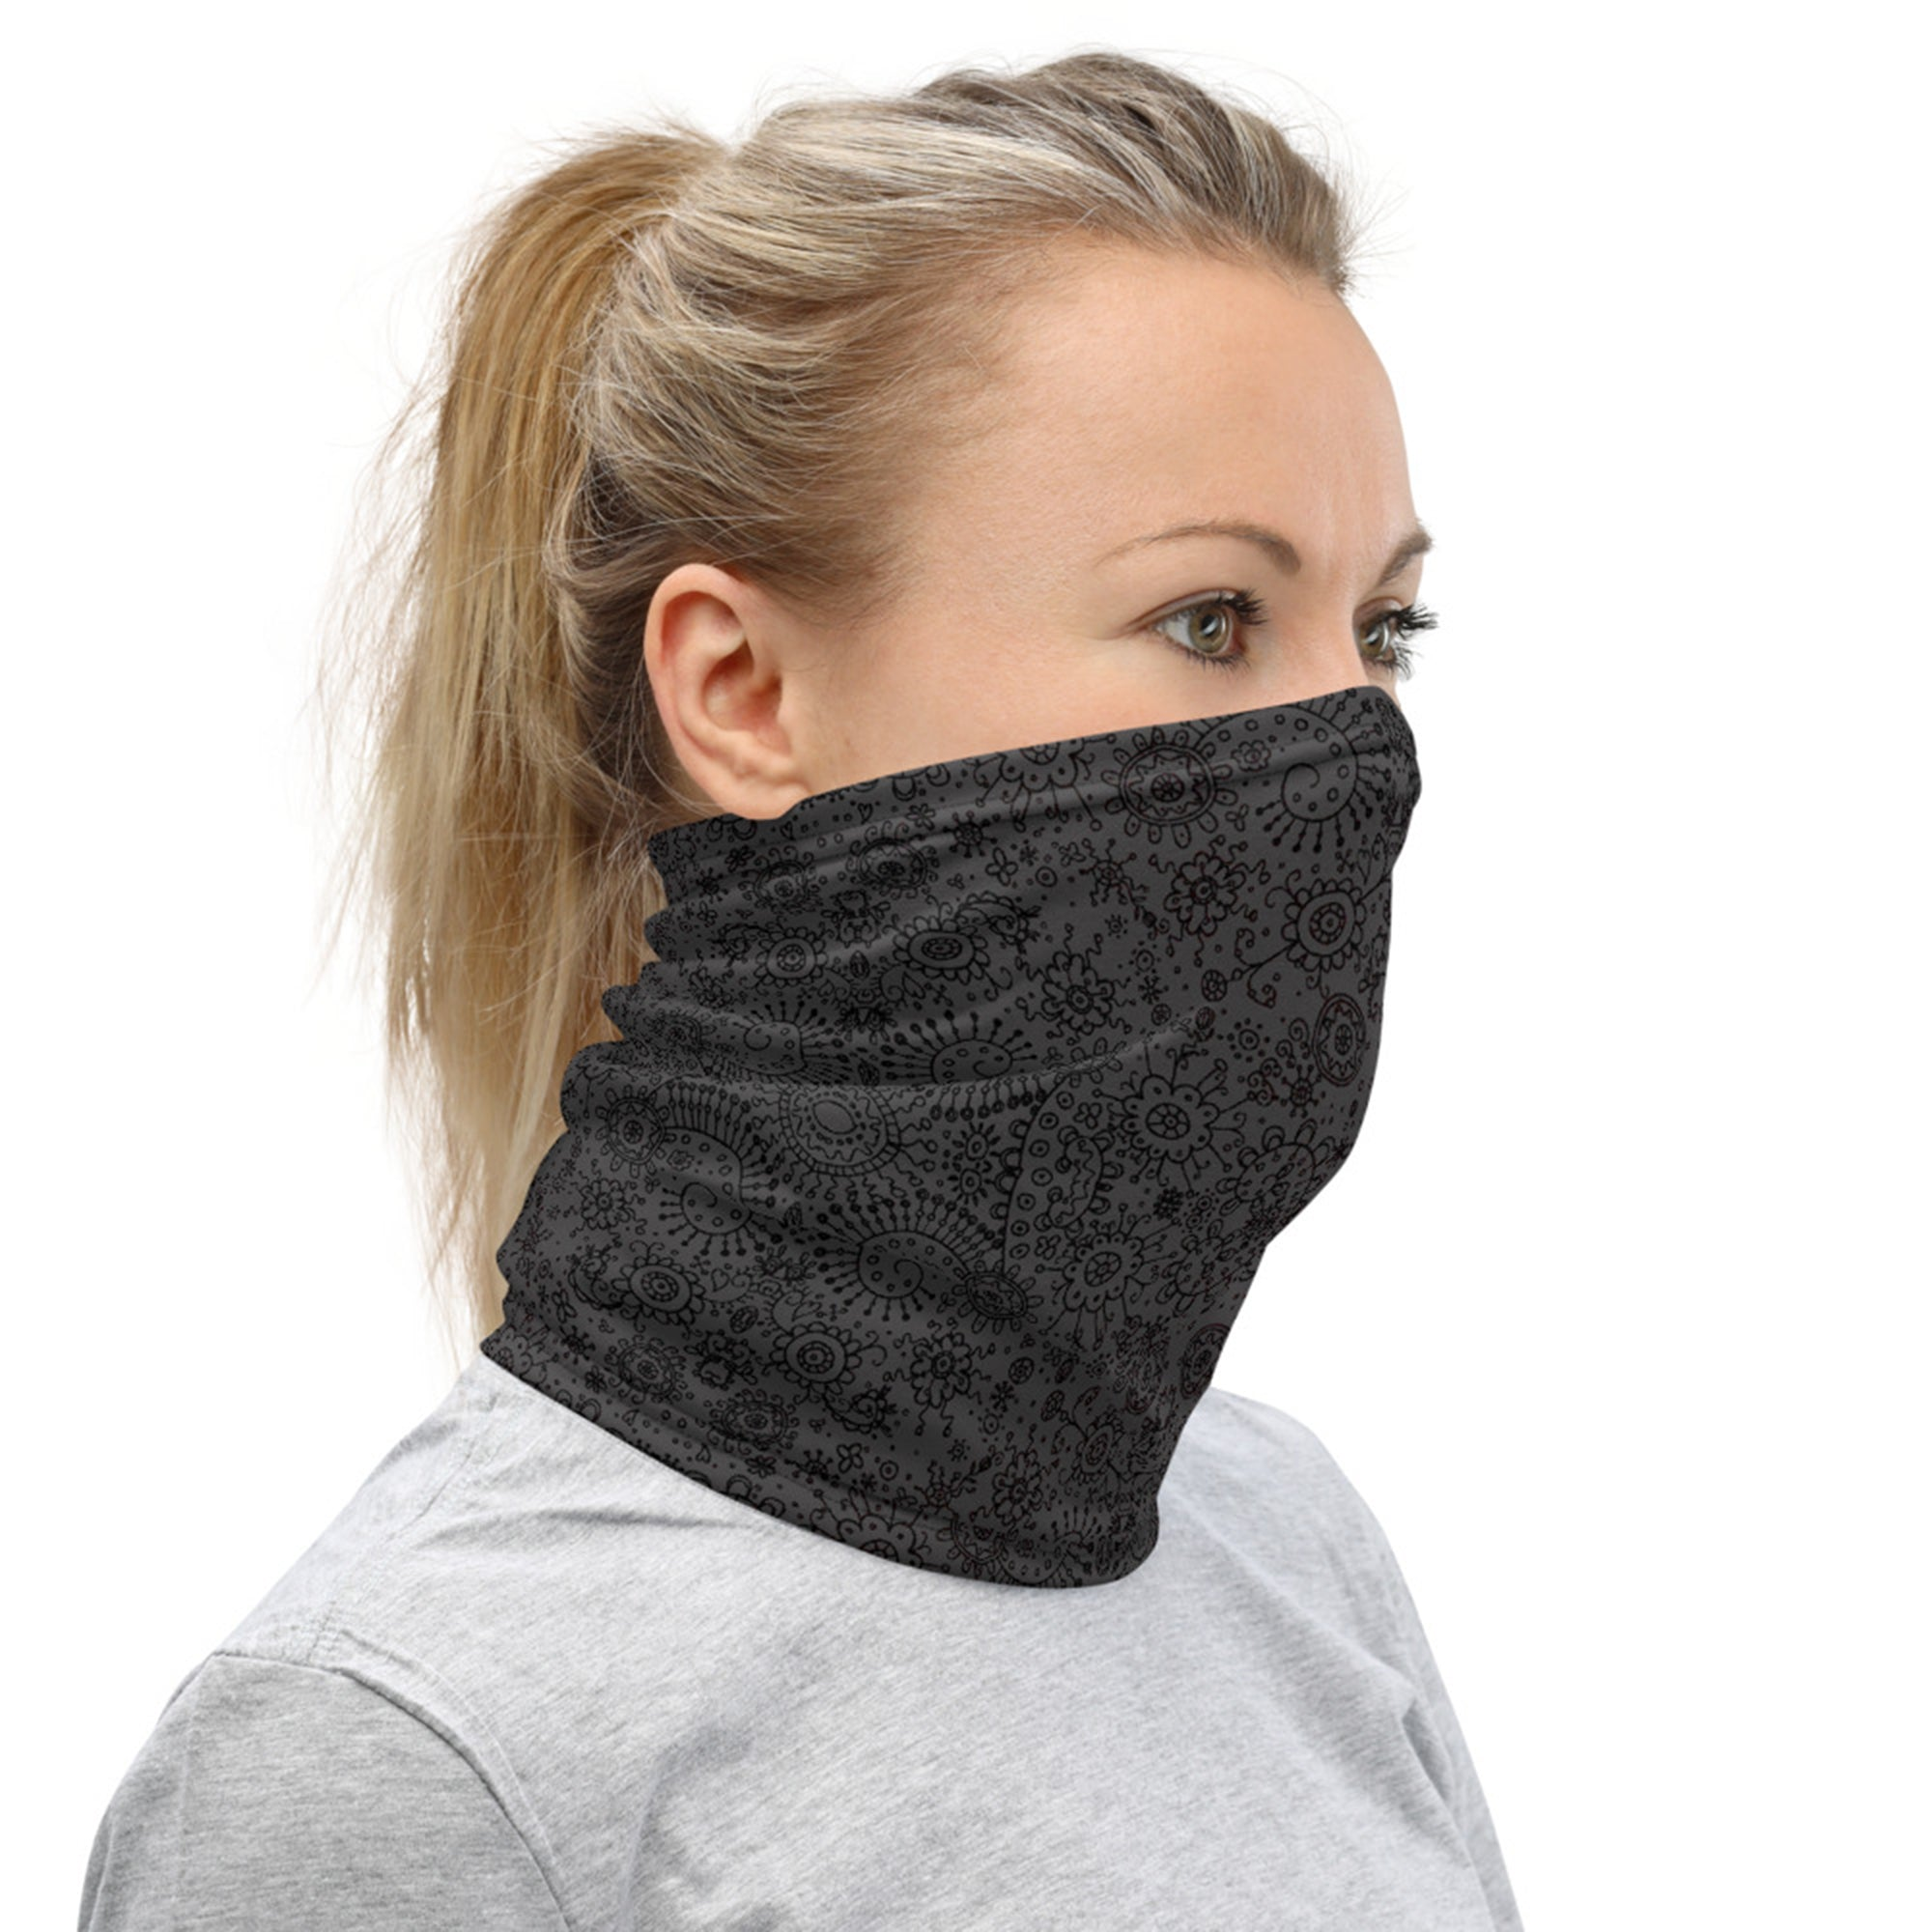 Cool Gray Doodle Stylish and Functional Neck Gaiter